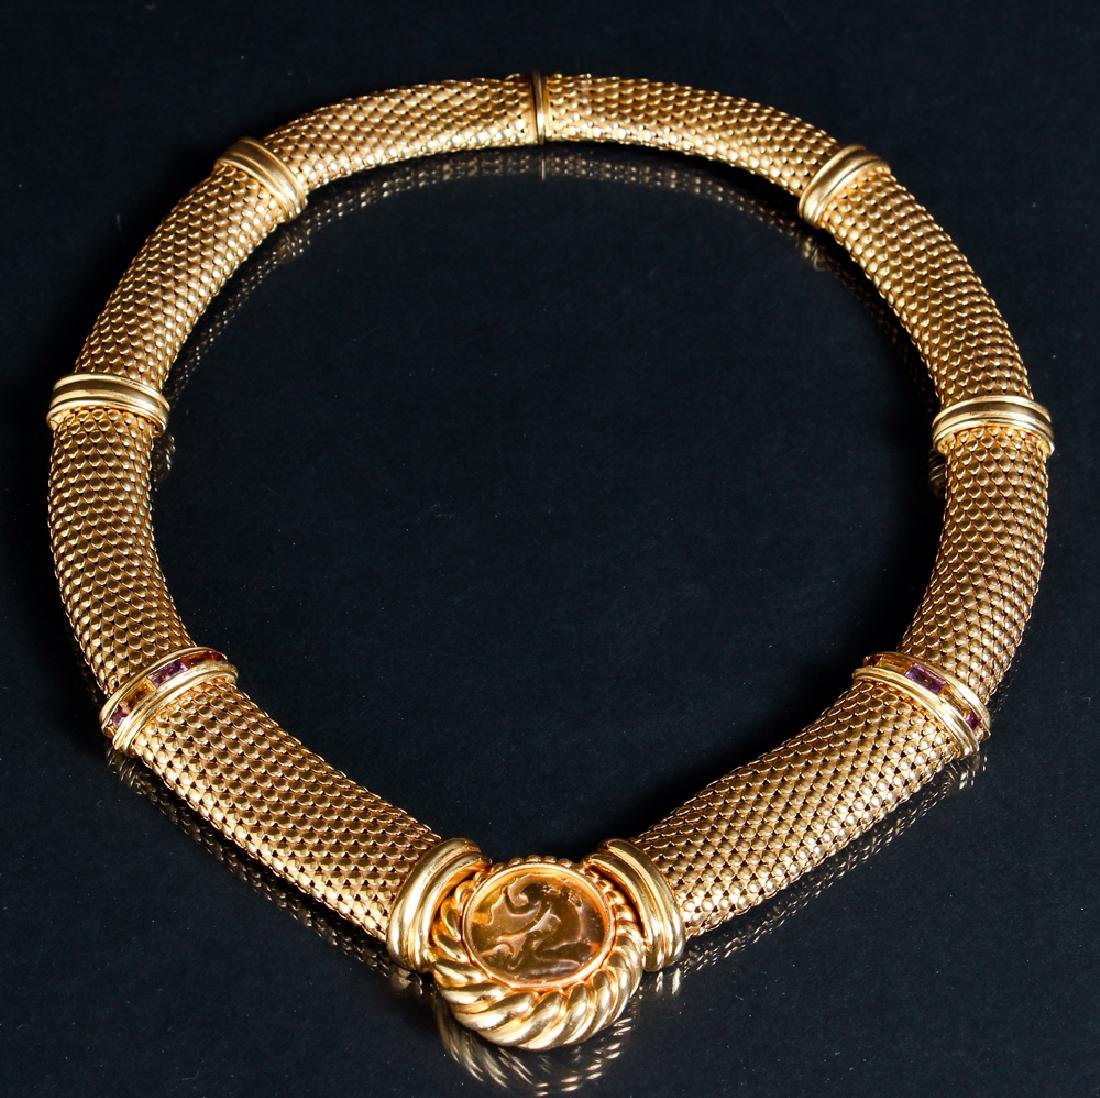 14k Gold Necklace with Leda and Swan Accent